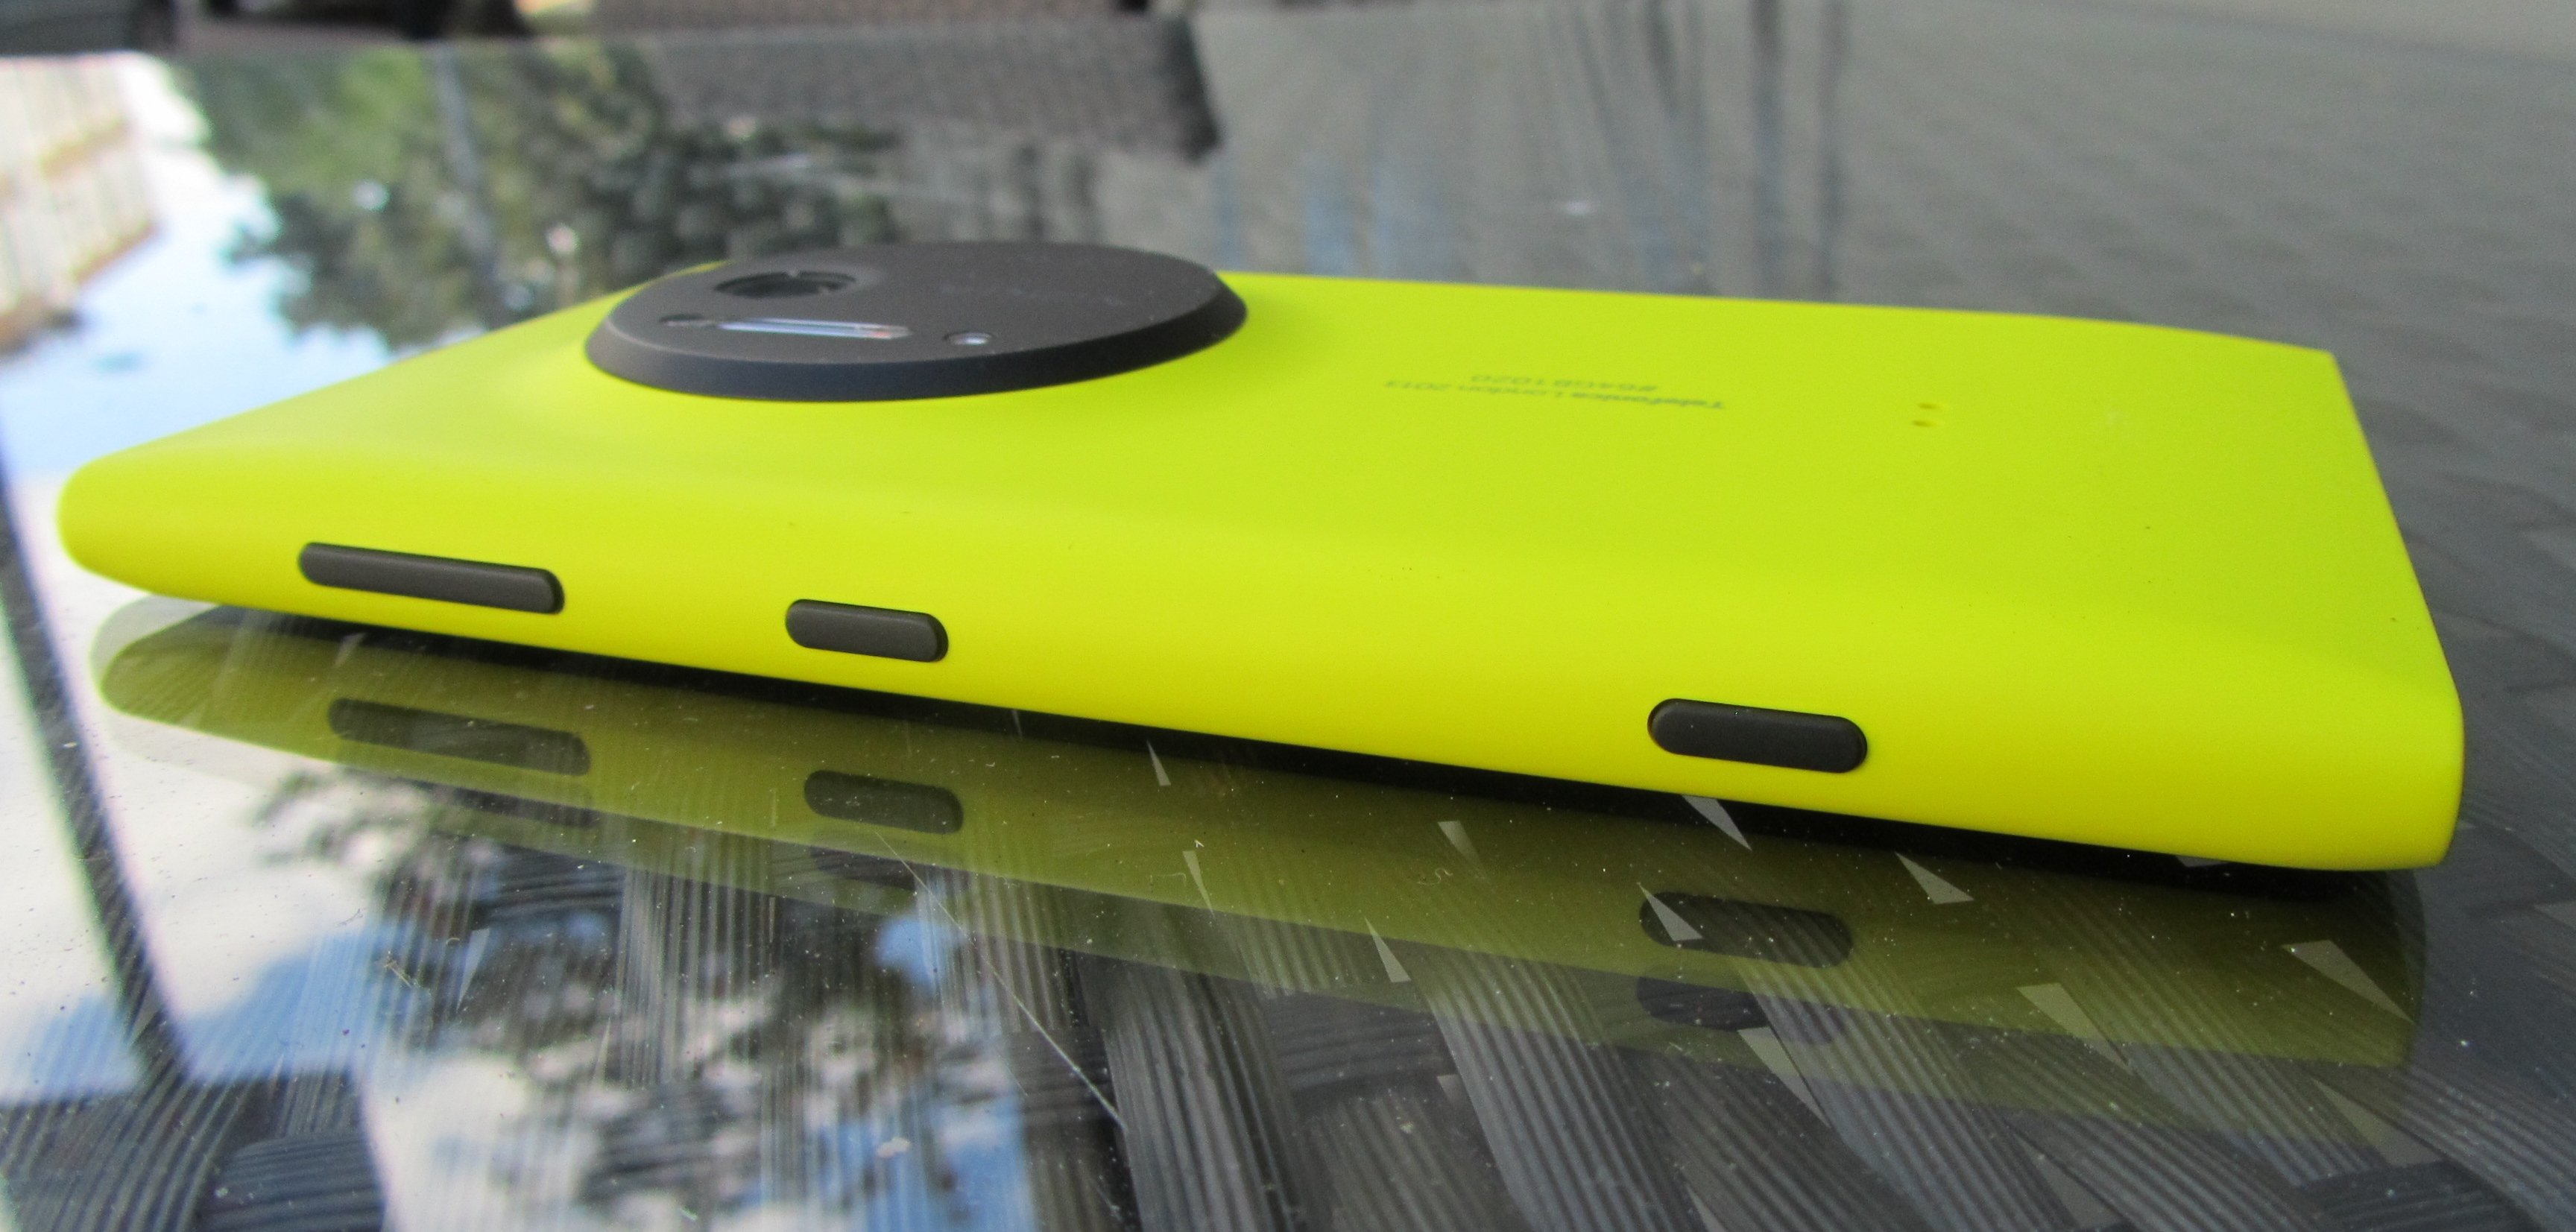 1020 rear Nokia Lumia 1020 review: The best camera phone, but not the best smartphone